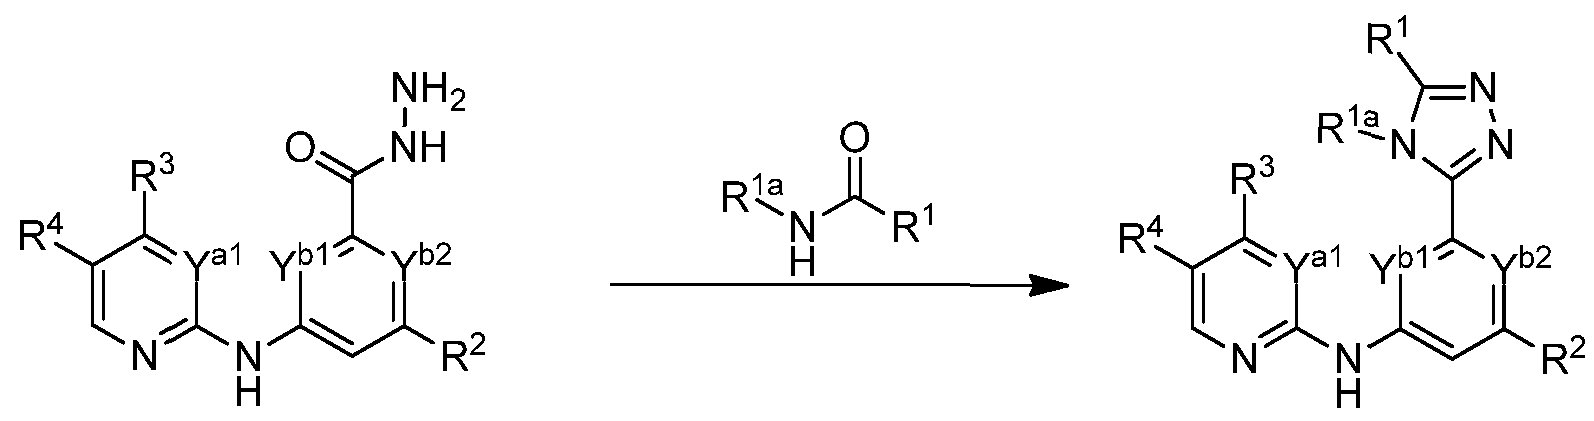 Patent WO2014048065A1 - Triazolyl derivatives as syk inhibitors ...